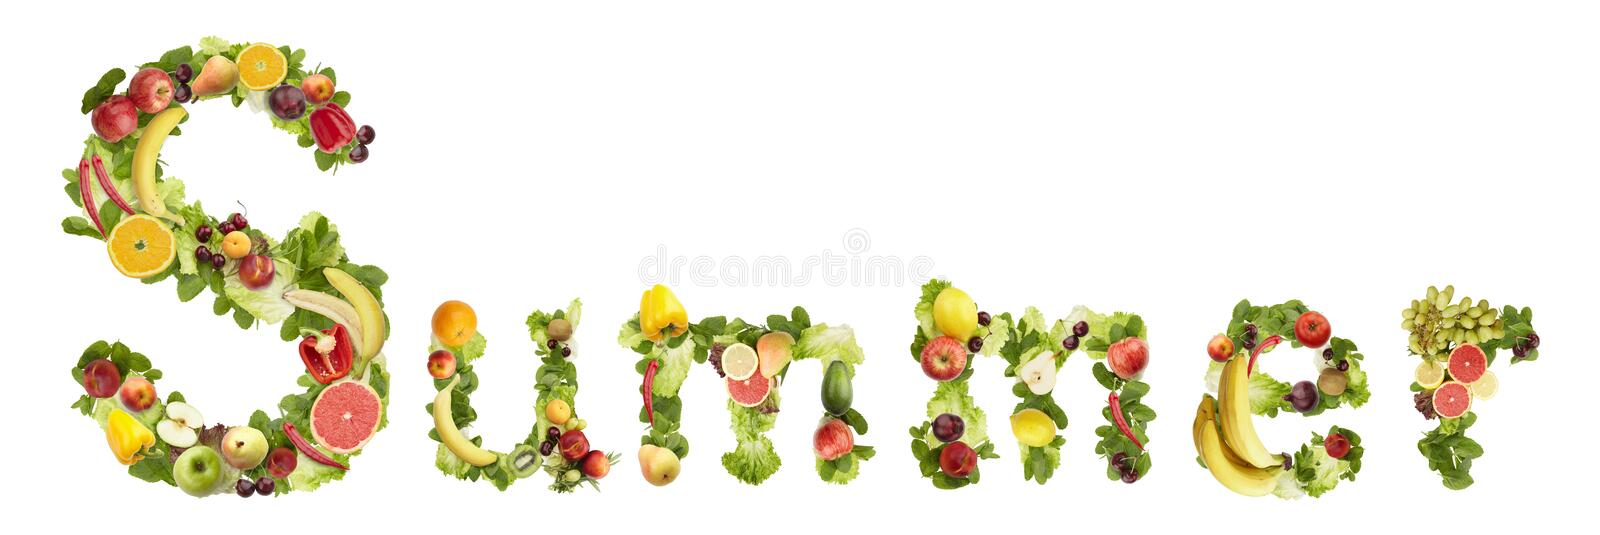 Download The Word SUMMER Made Of  Fruits And Vegetables Stock Photo - Image: 20779974